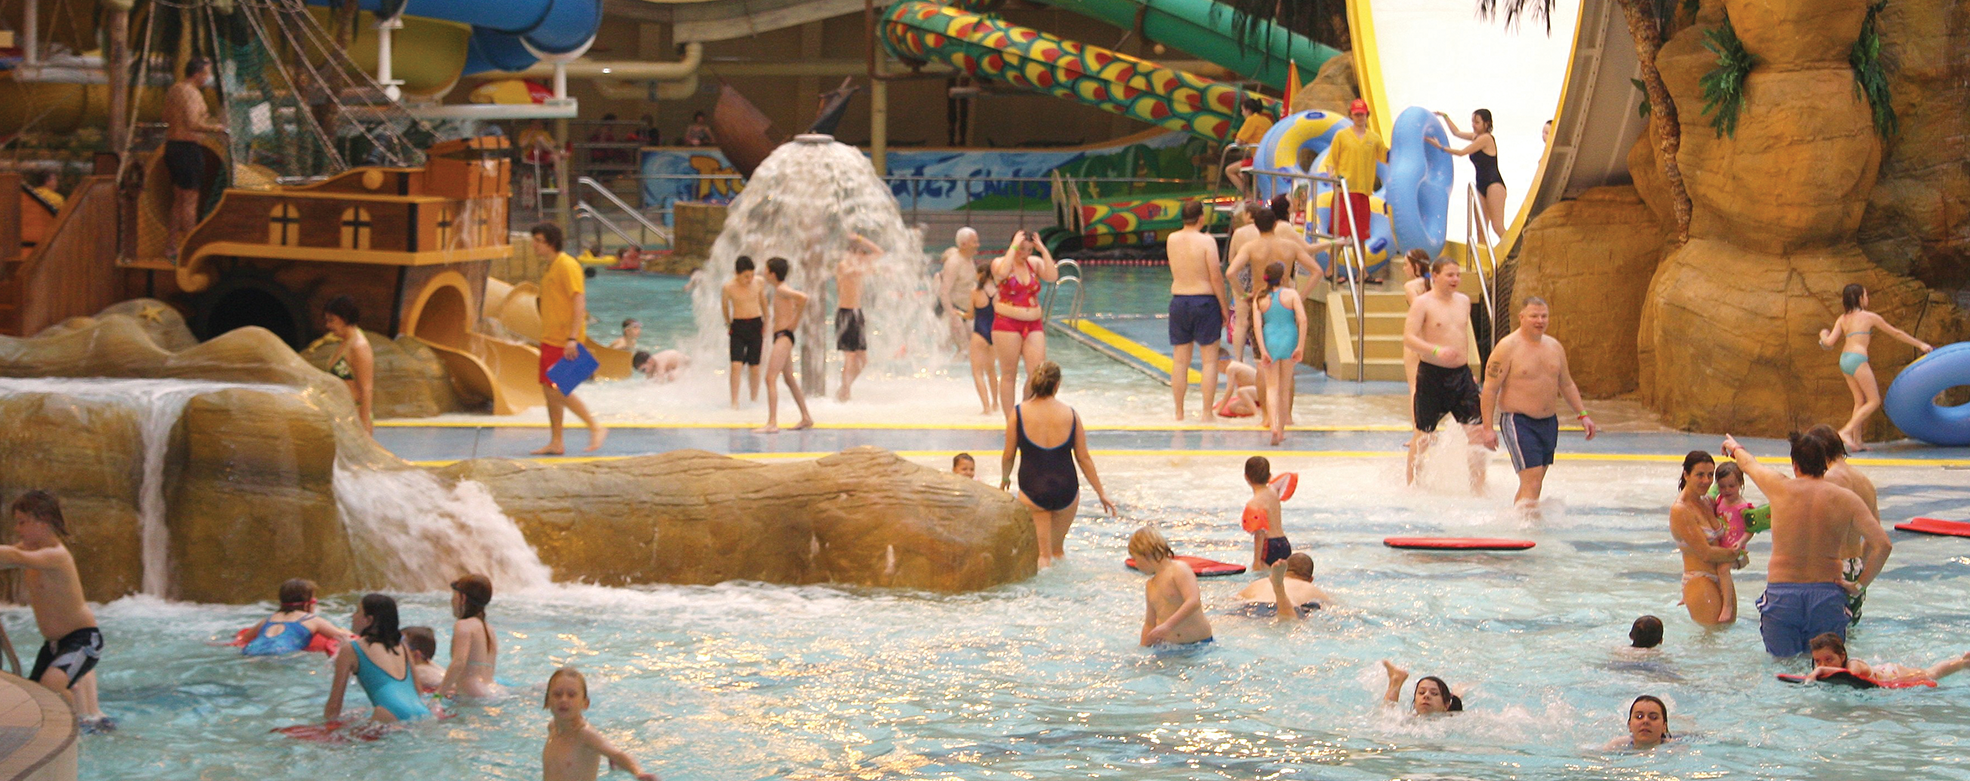 Sandcastle Waterpark - Display Energy Certificate - ESG Pool Ventilation & Heat Pump Specialist